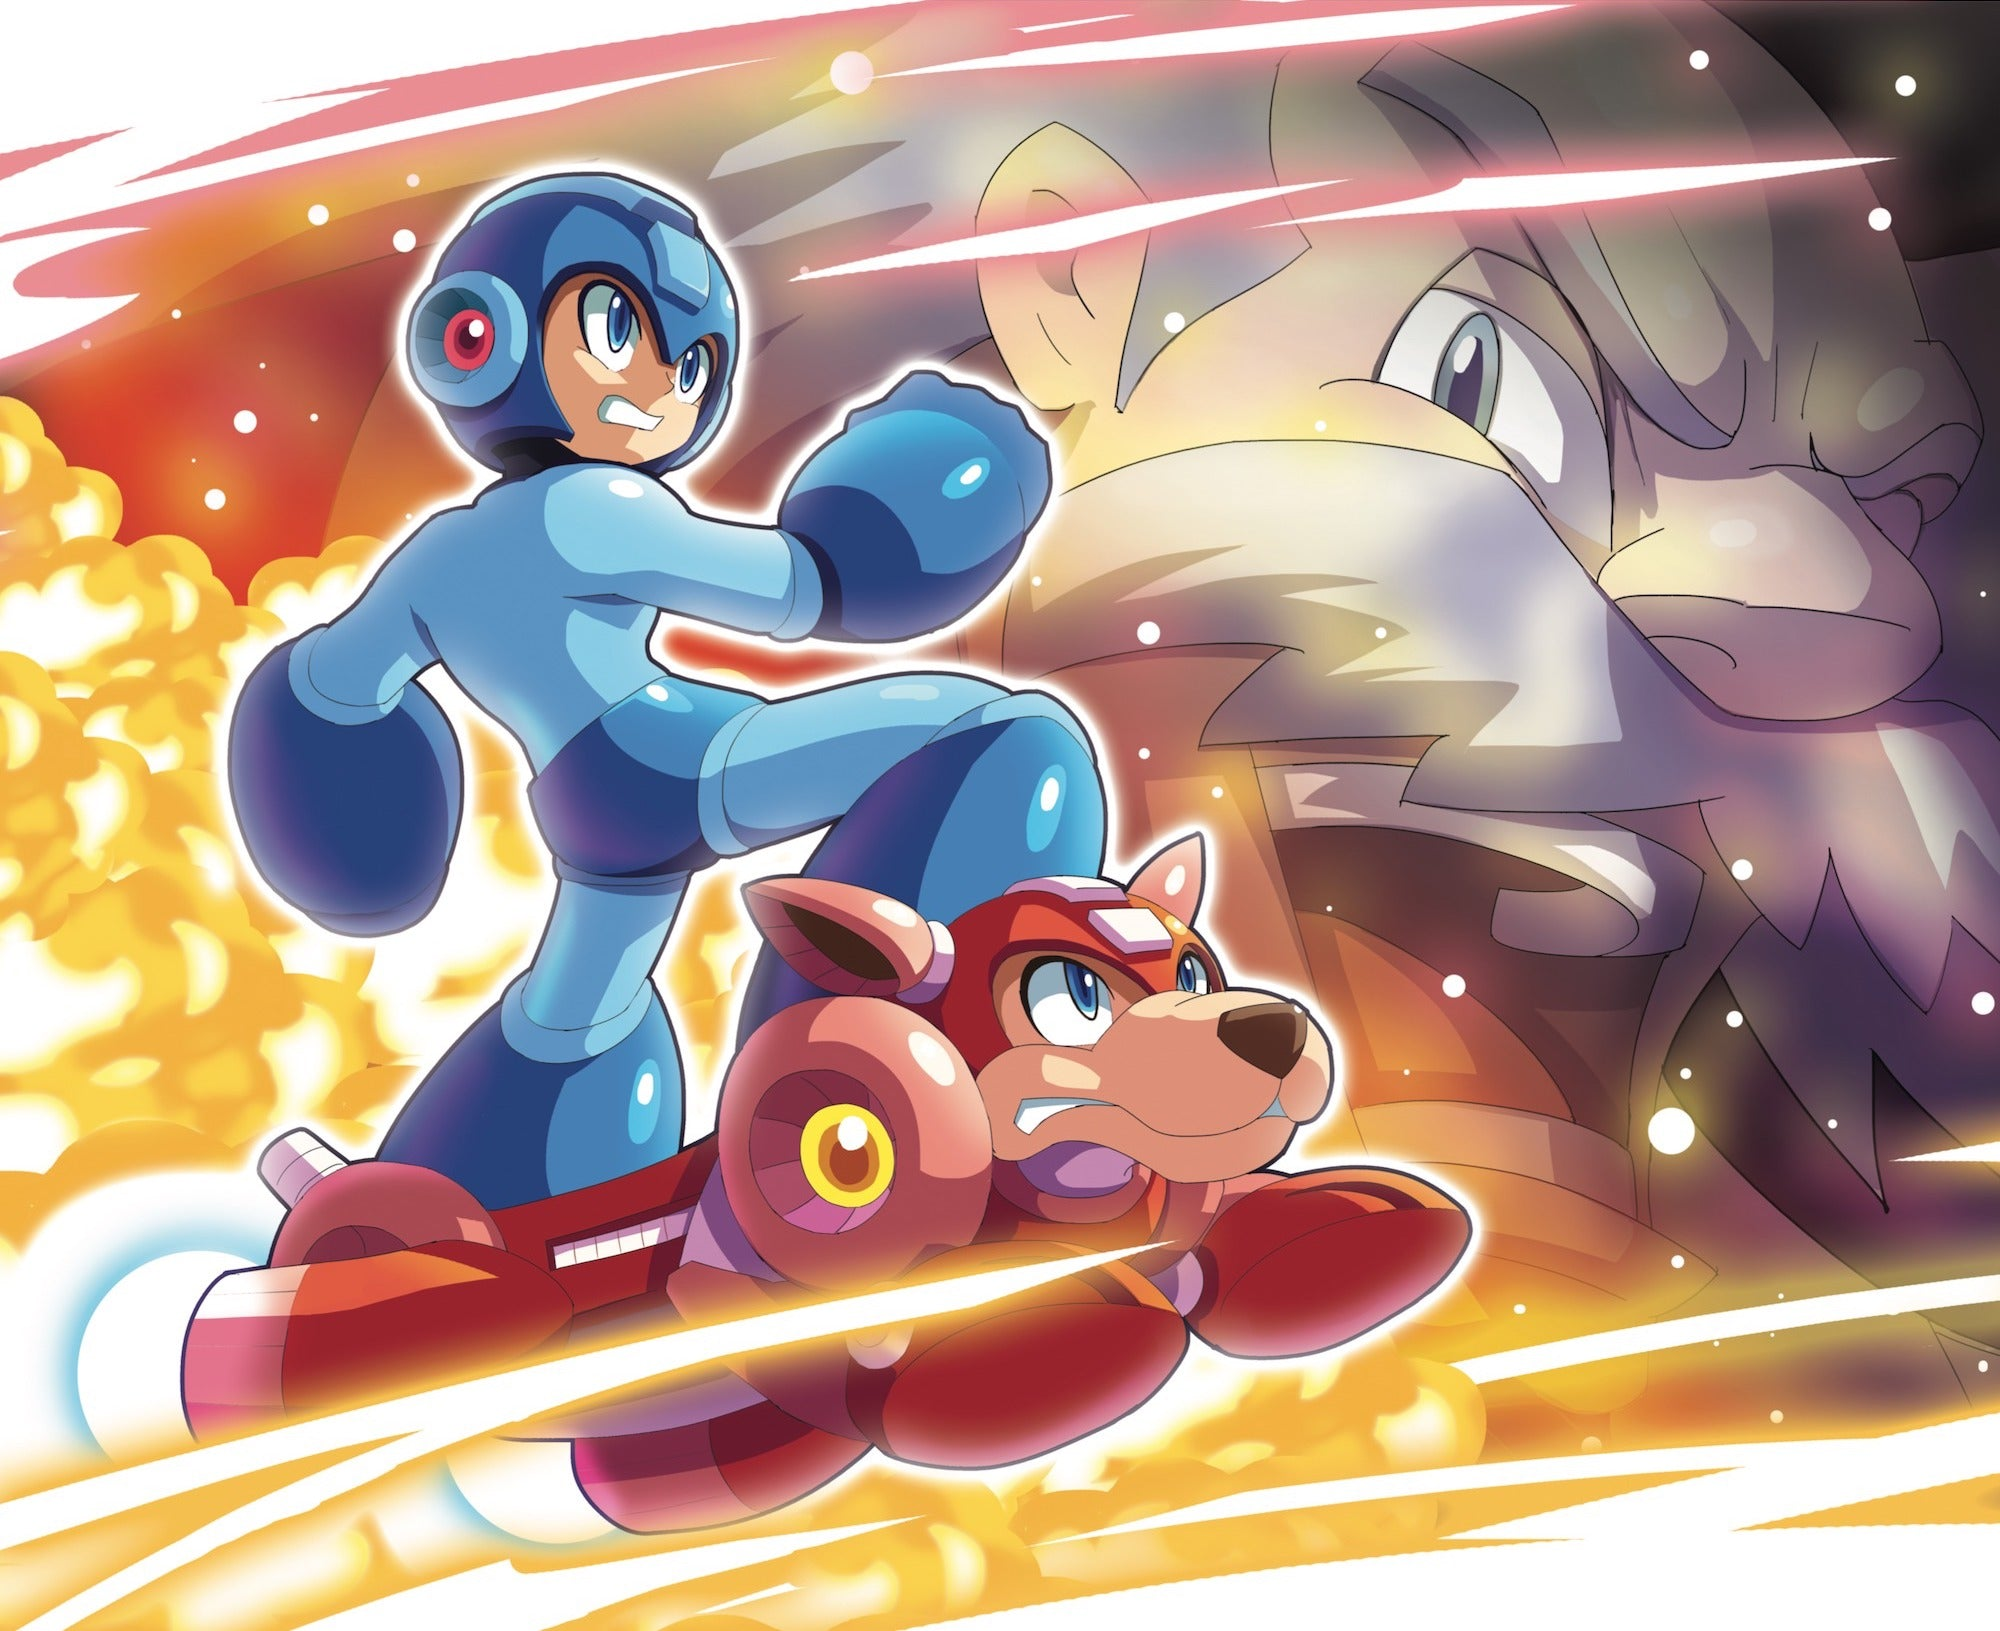 ultimatemaverickx's artwork for Mega Man 1-11: The Collection vinyl box set